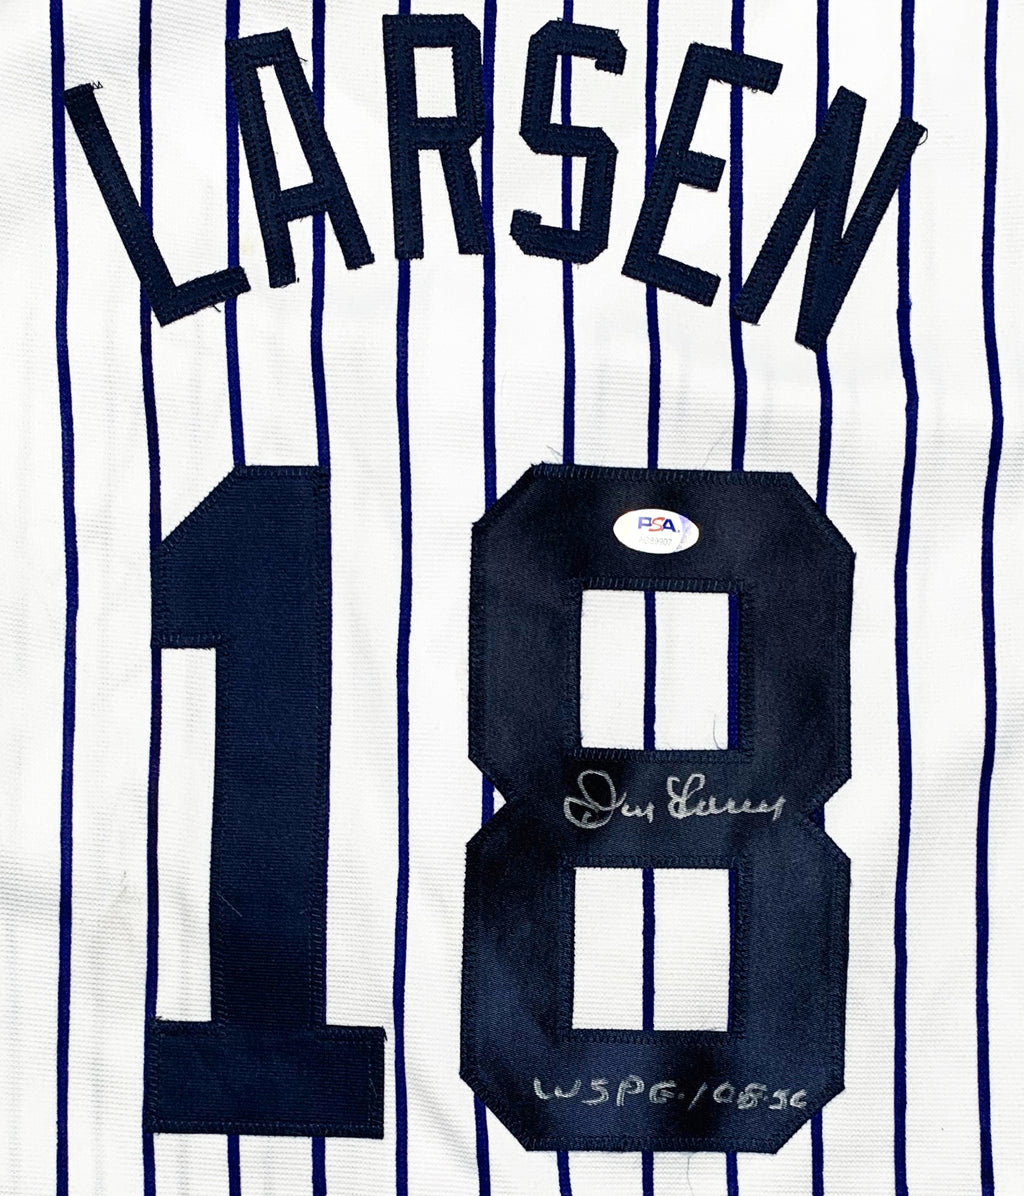 Don Larsen autographed signed inscribed jersey MLB New York Yankees PSA COA - JAG Sports Marketing